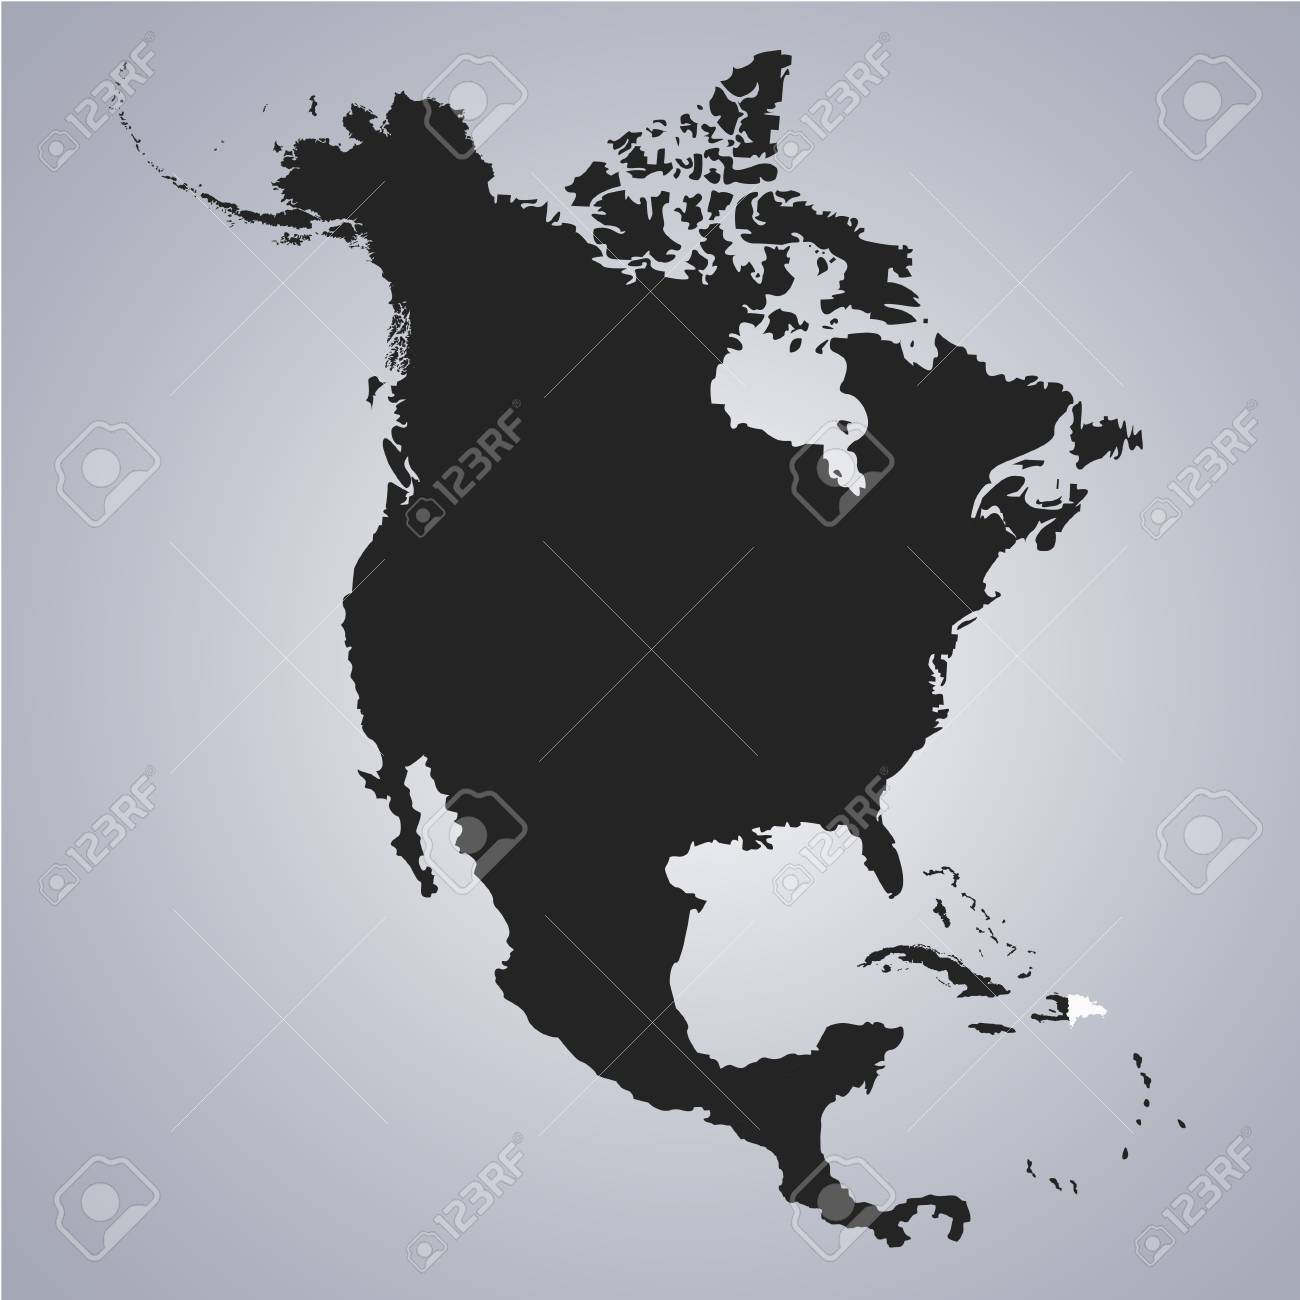 territory of dominican republic on north america continent map